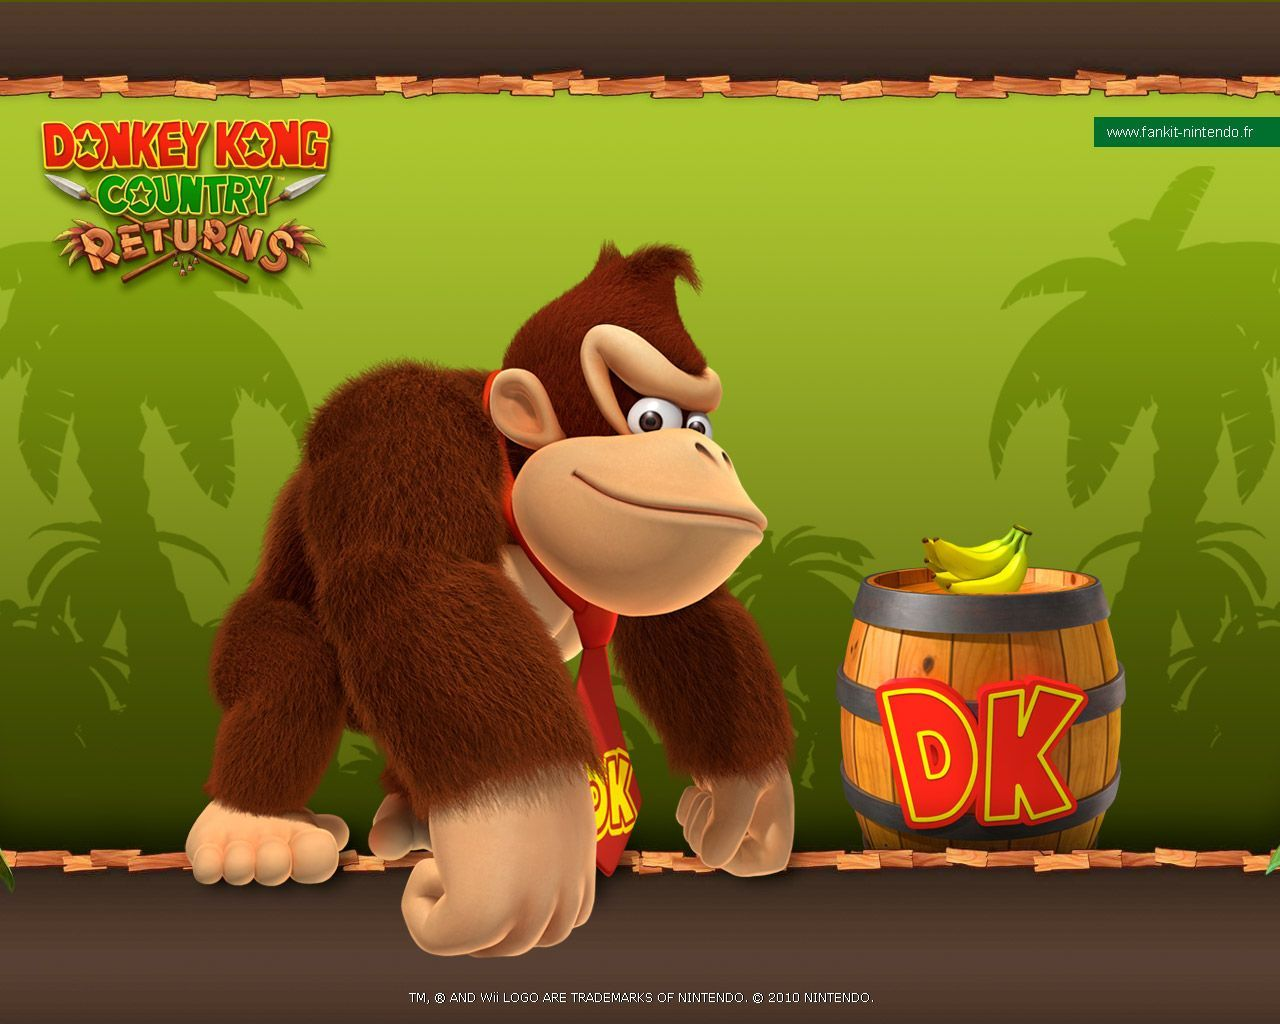 Donkey Kong Hd Wallpapers Backgrounds Wallpaper 800 500 Donkey Kong Wallpapers Adorable Wallpapers Donkey Kong Wallpaper Wallpaper Backgrounds